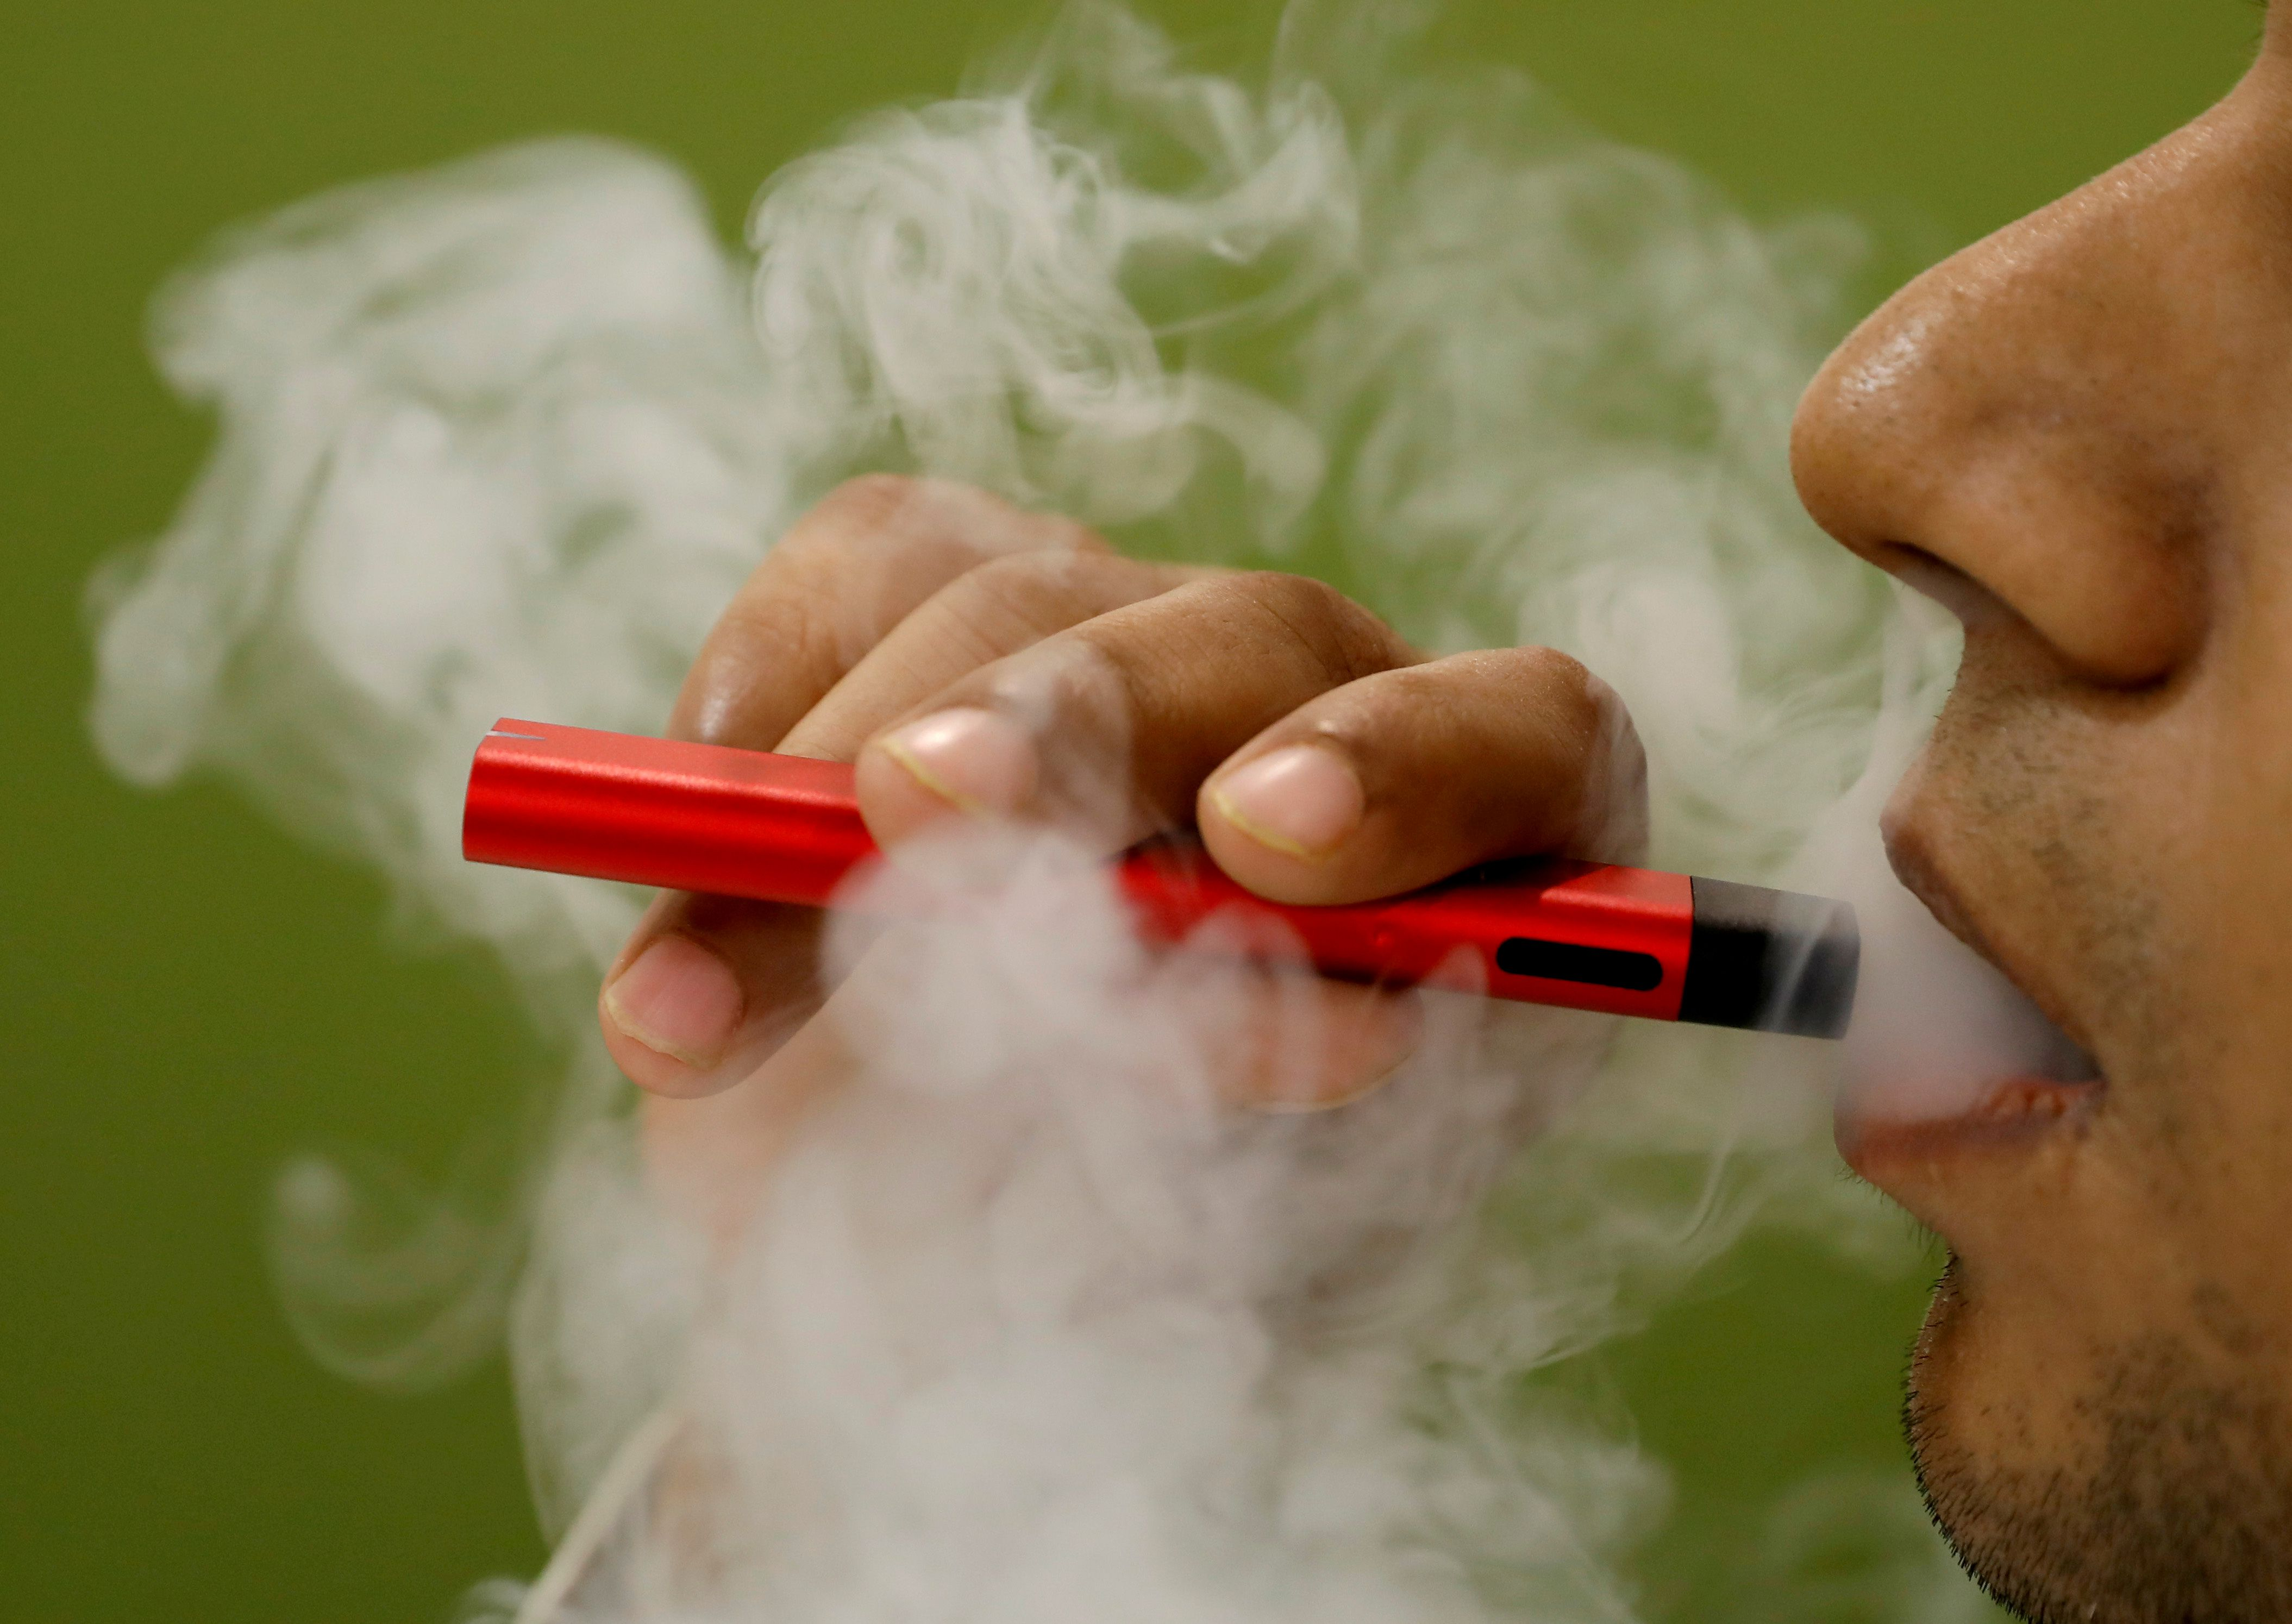 First probable case of vaping-related illness identified in B.C.